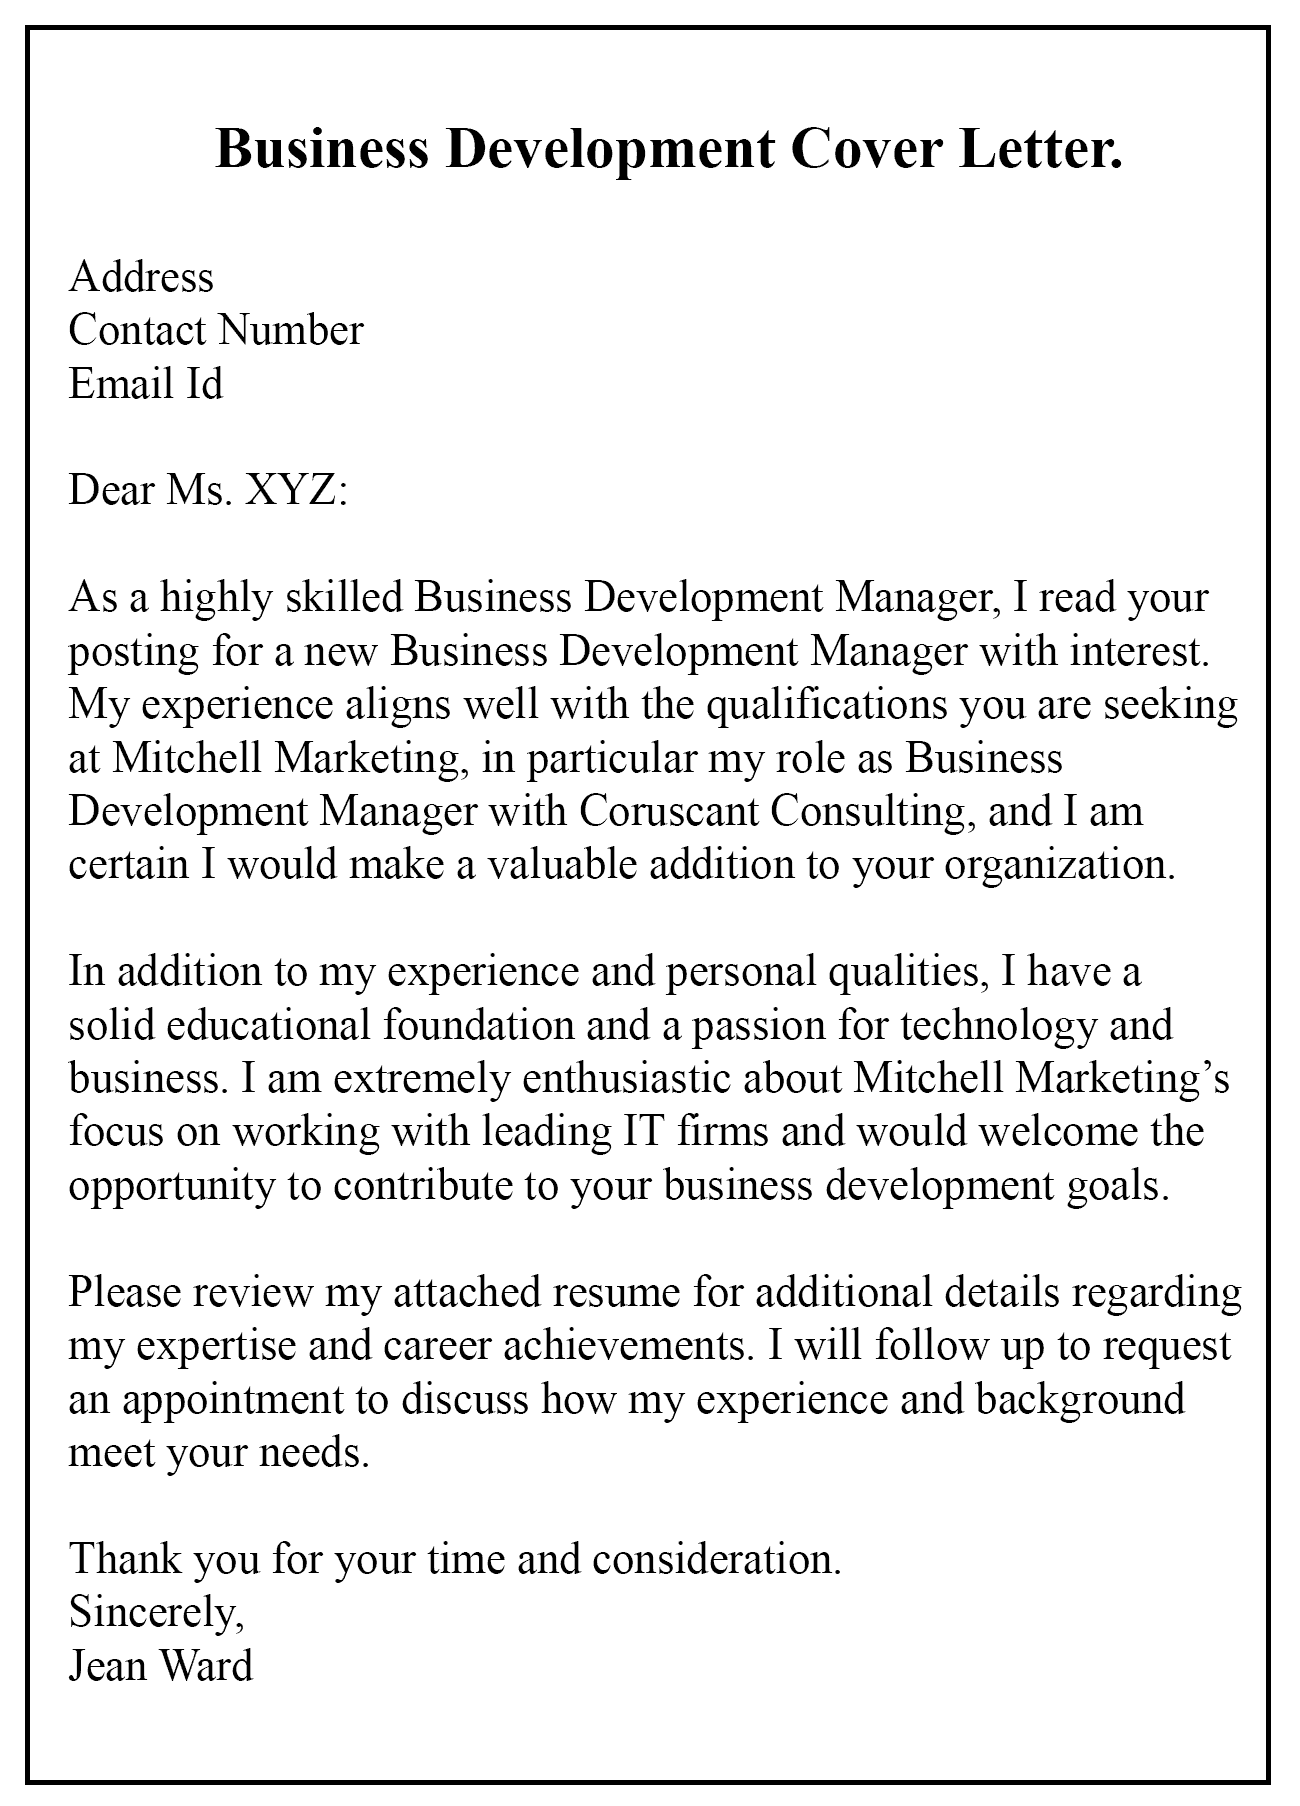 Business Development Letter Example